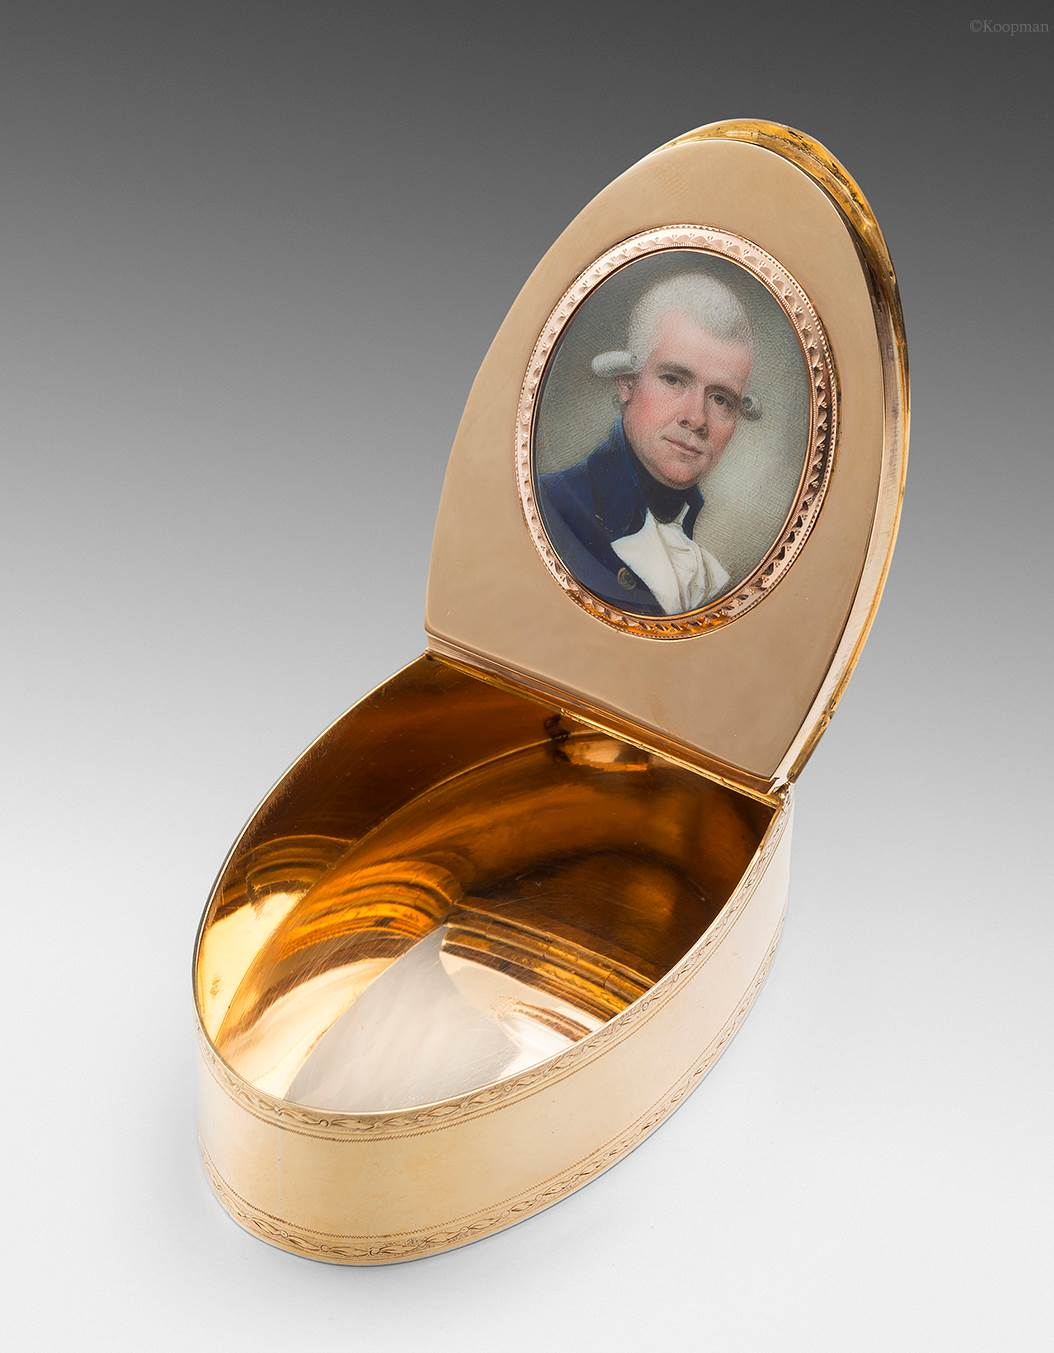 A George III Gold Elliptical Gold Box with Portrait Miniature